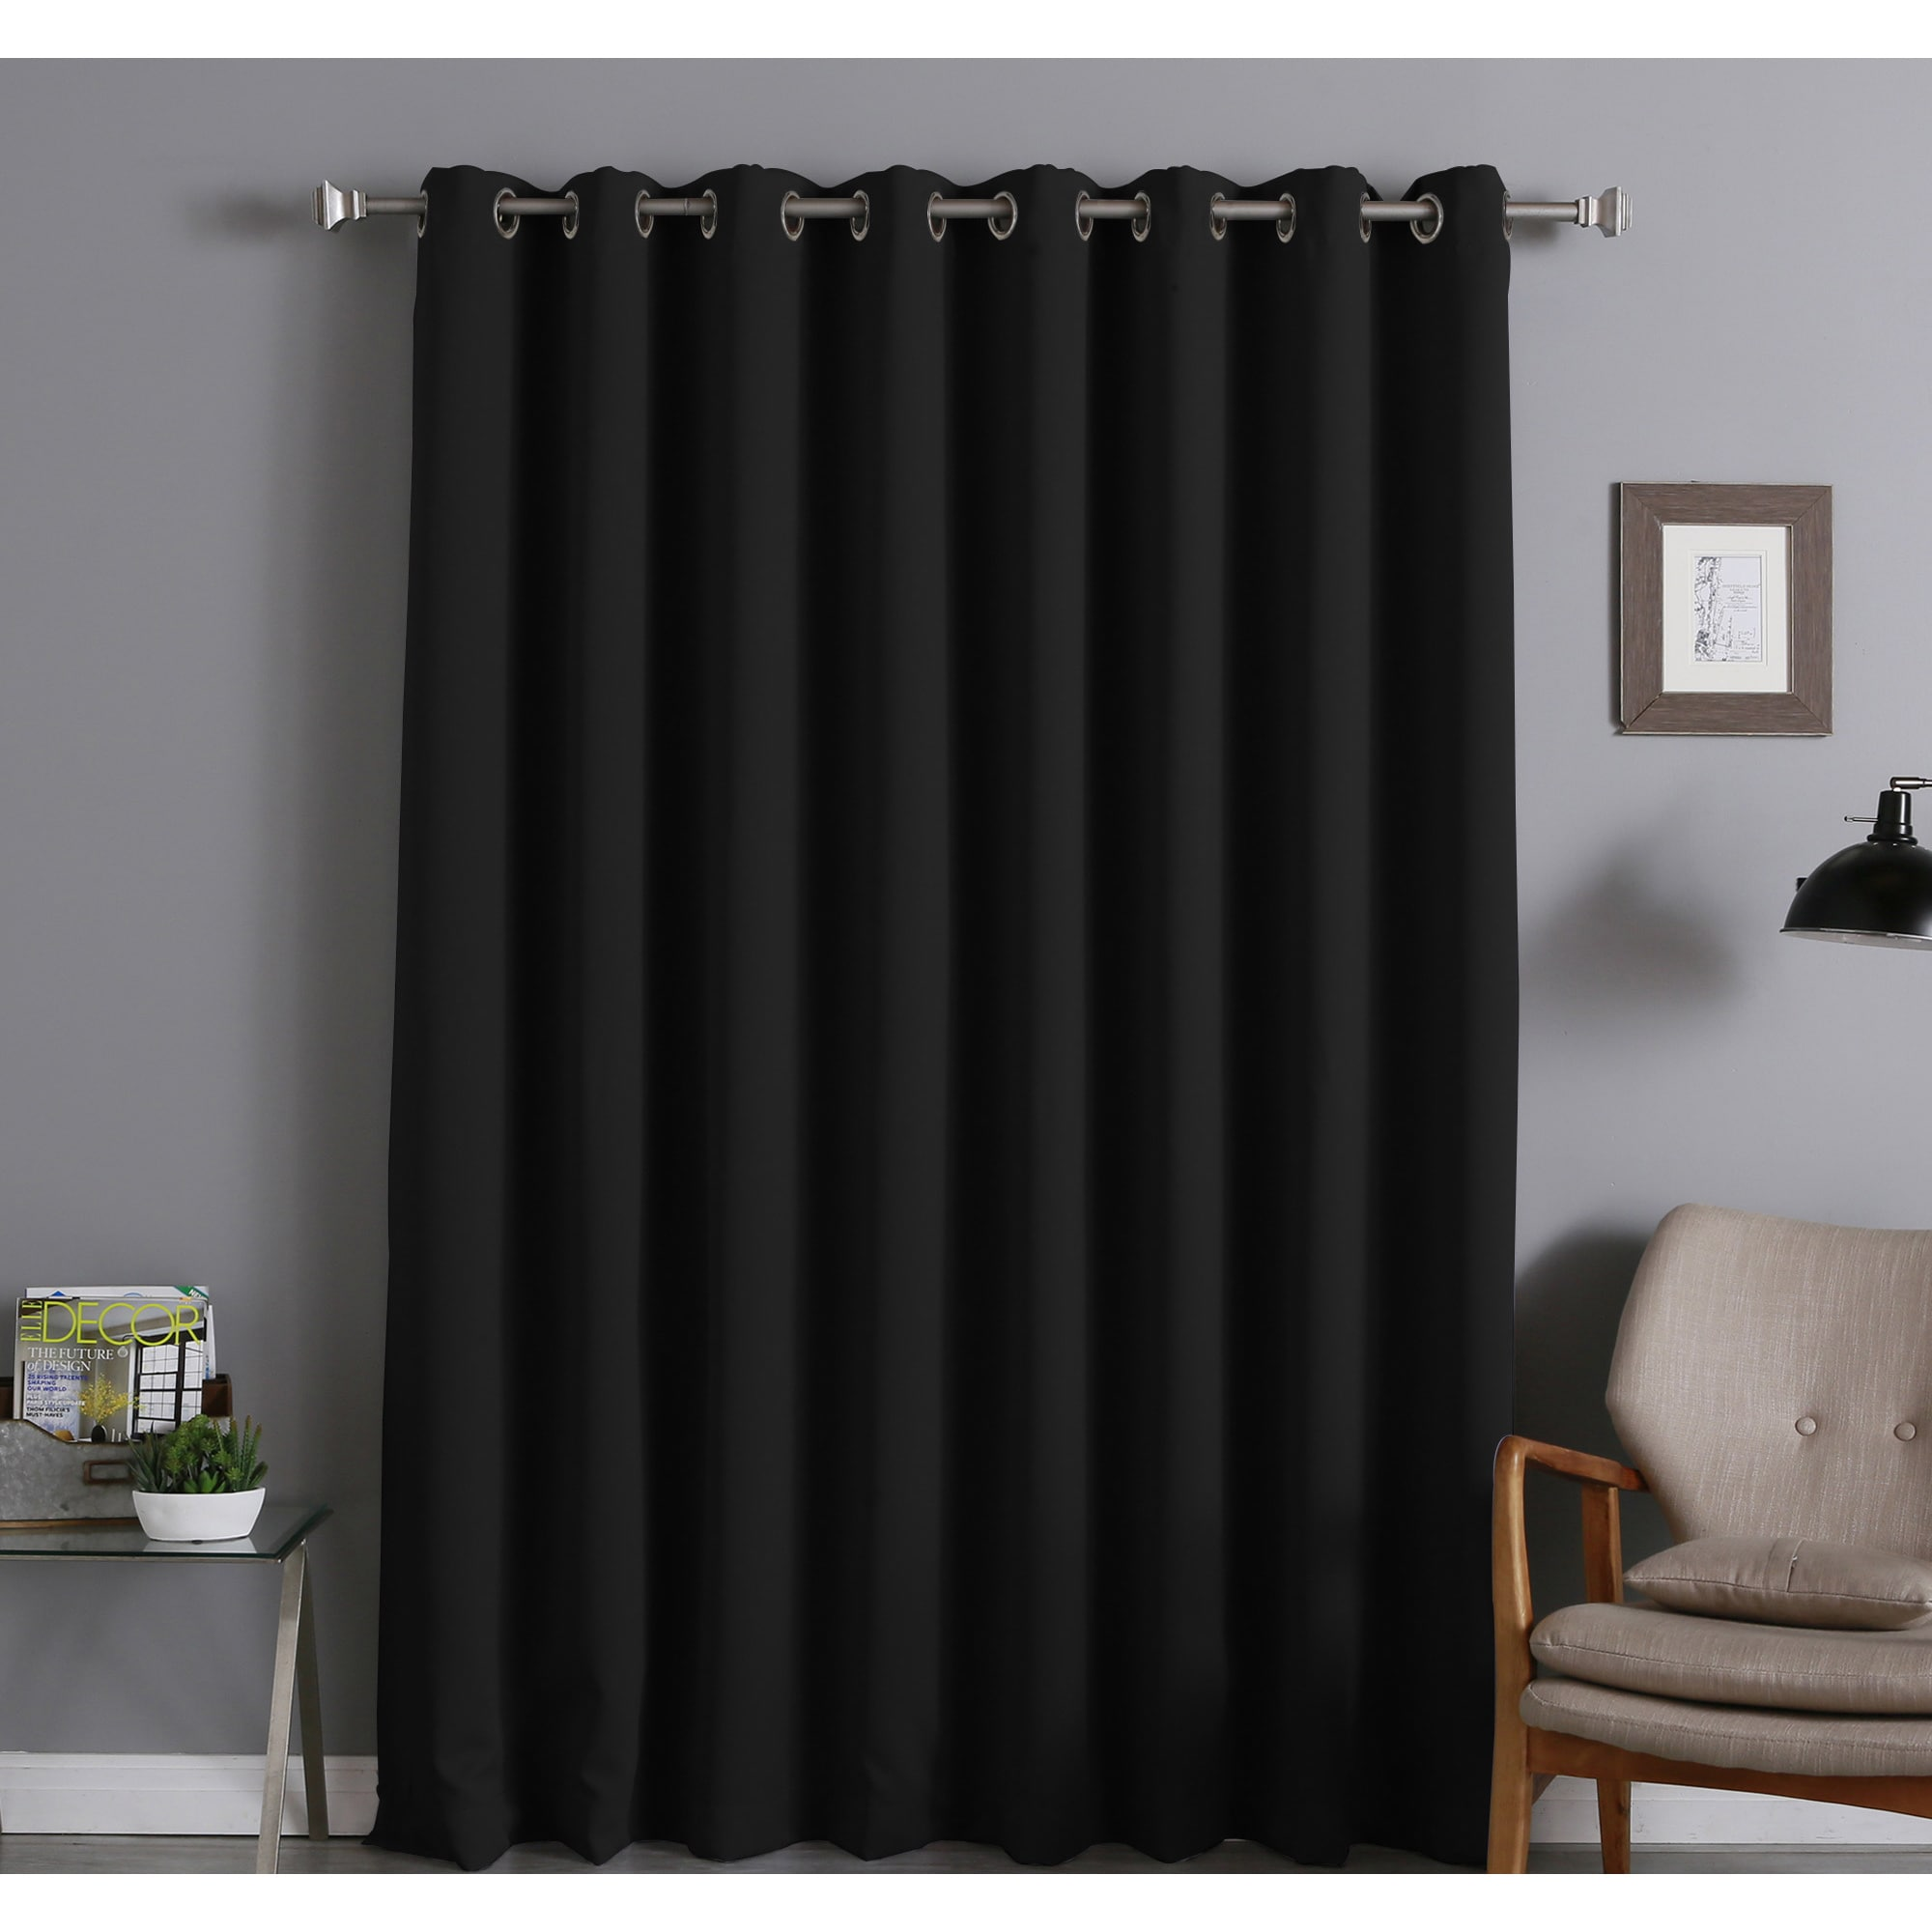 Aurora Home Extra Wide Thermal Insulated 96 Inch Blackout Curtain Panel 100 X